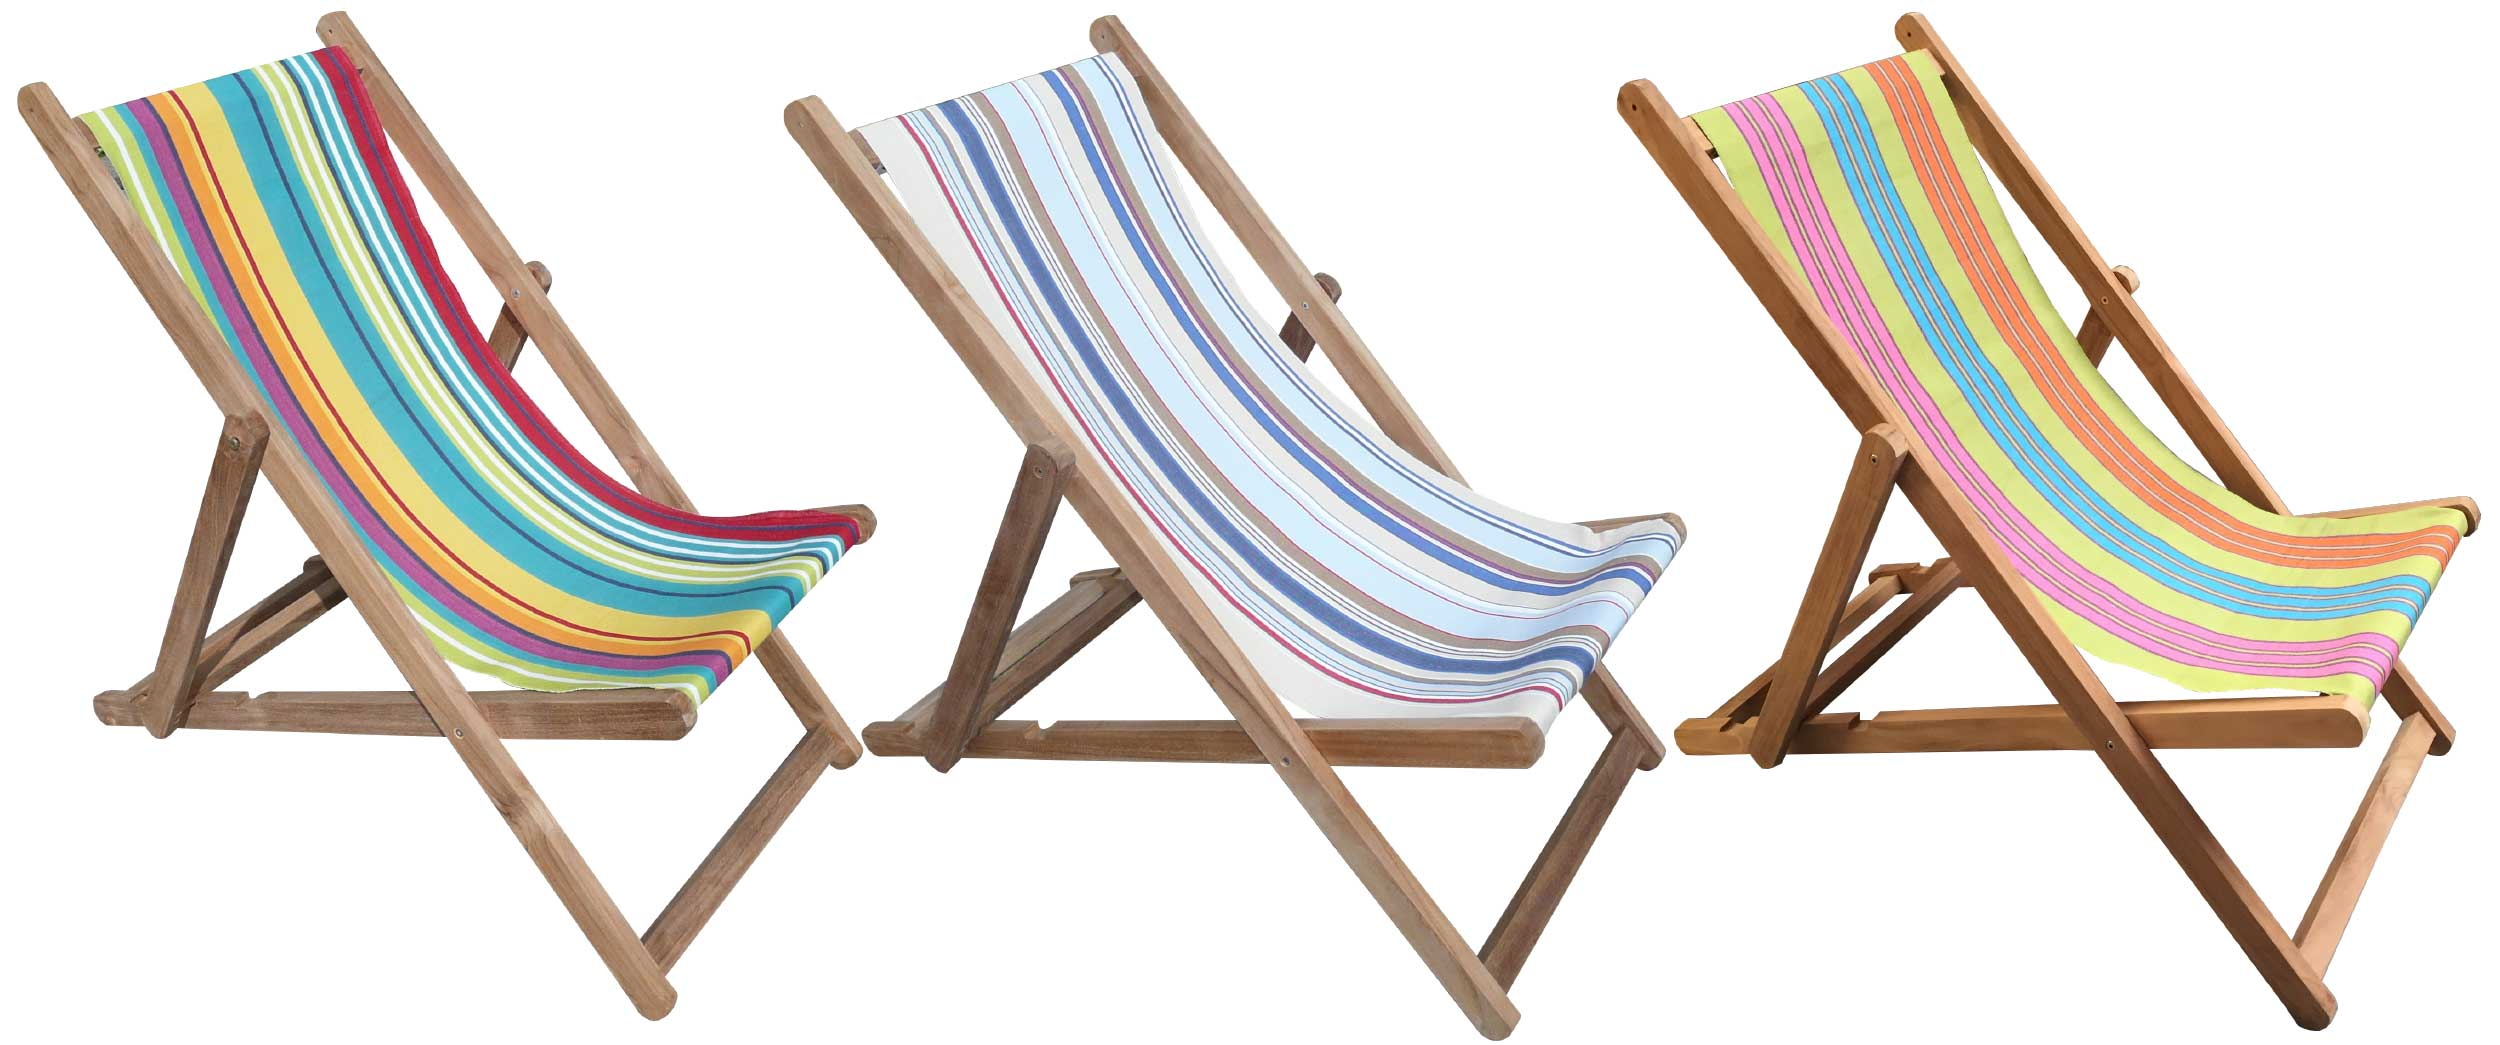 Garden Deckchairs | Wooden Deck Chairs with Striped Deckchair Sling - Yoga Stripe